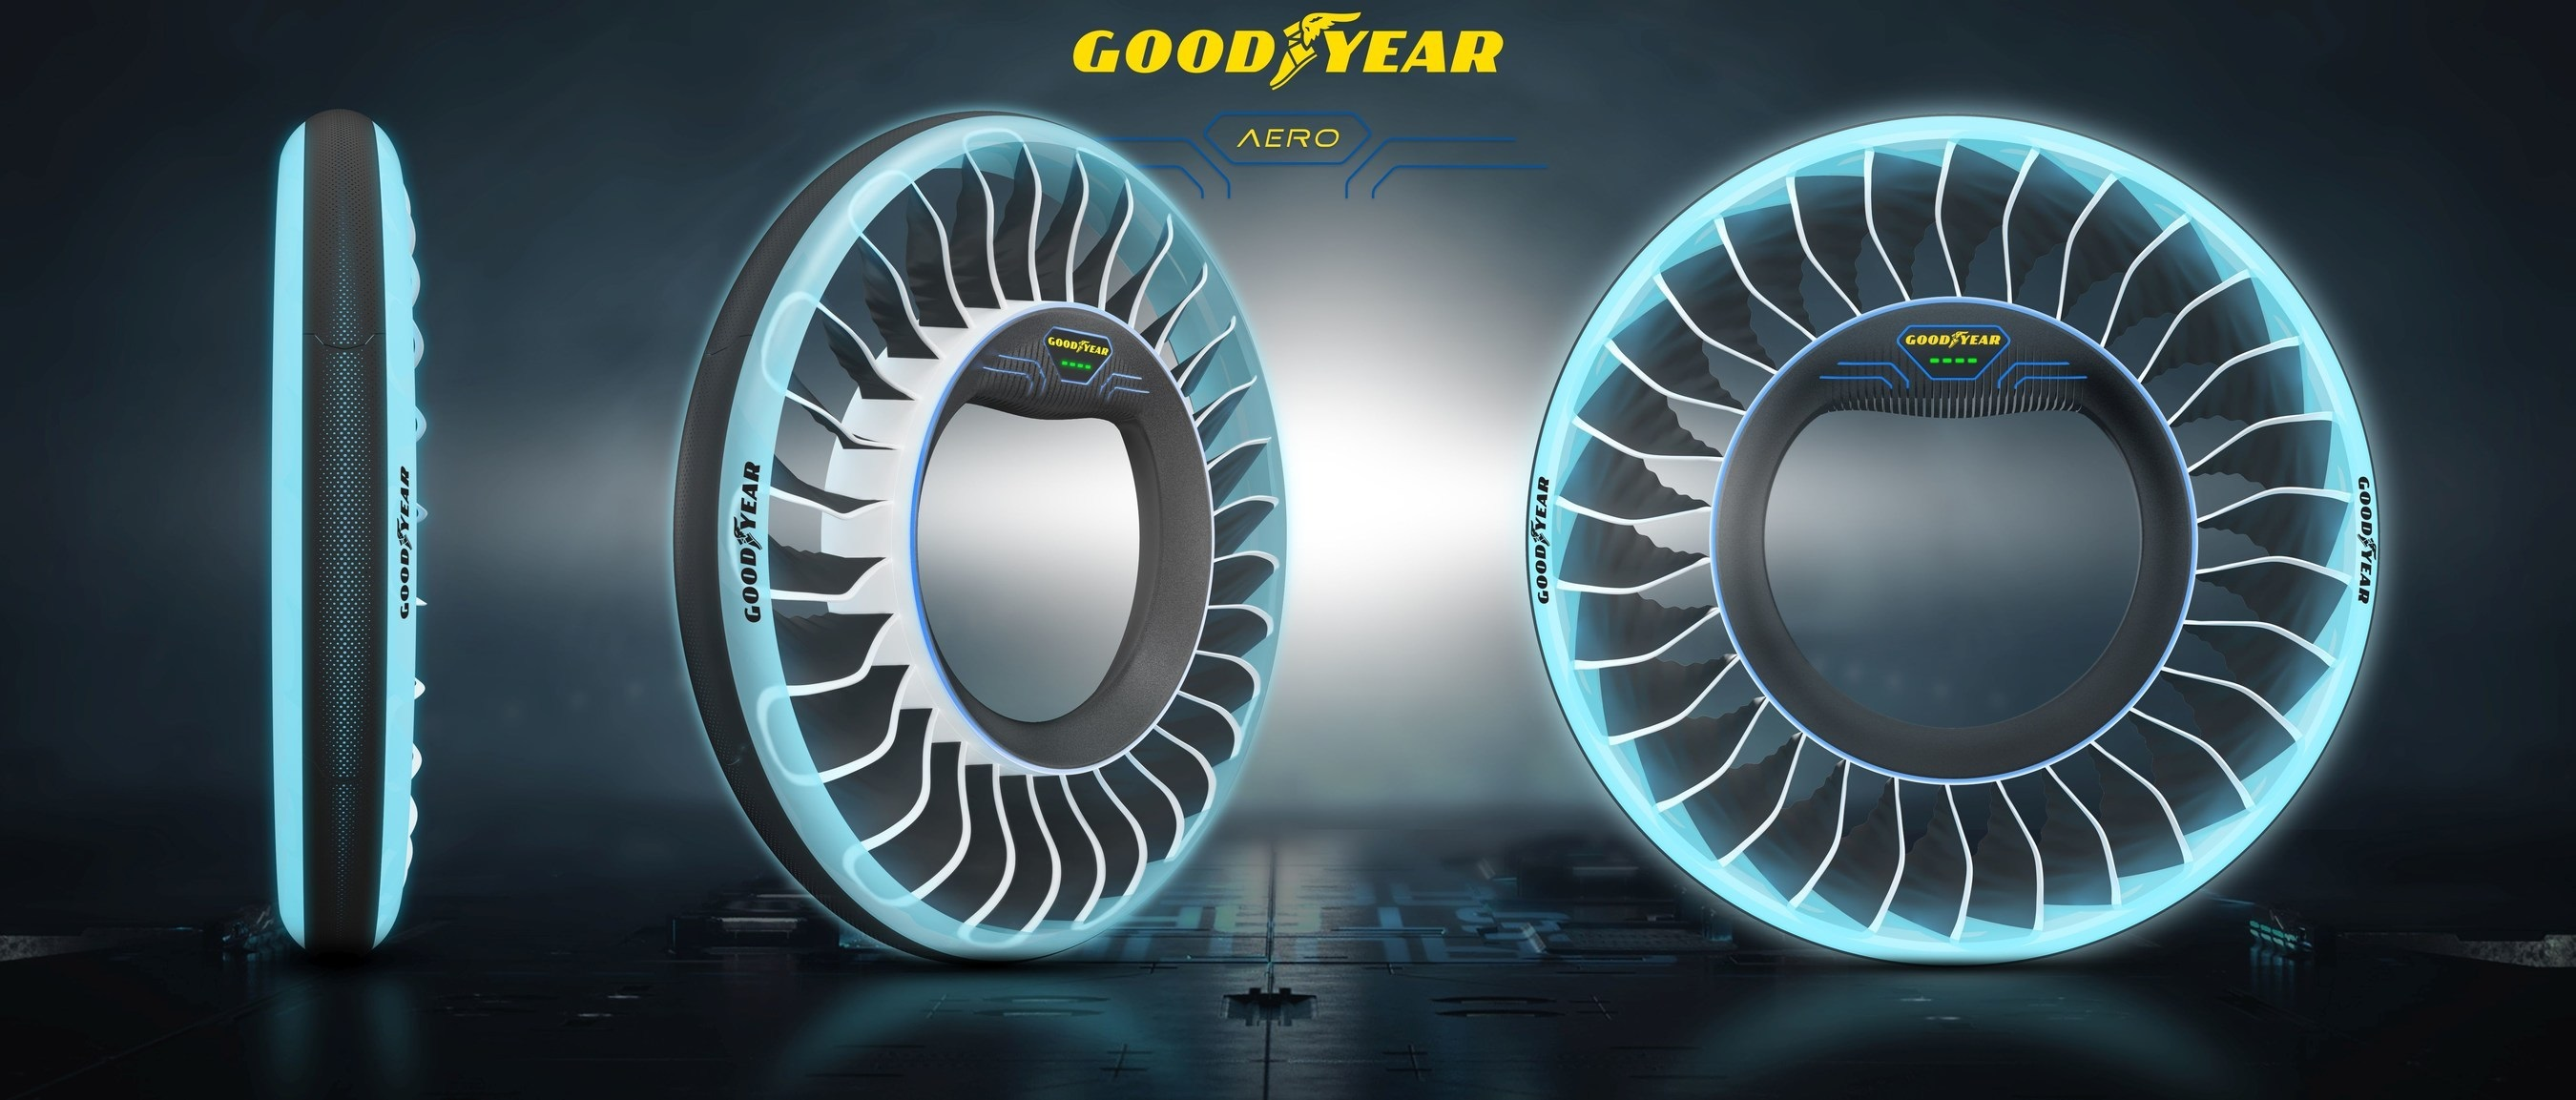 Goodyear AERO Concept full view